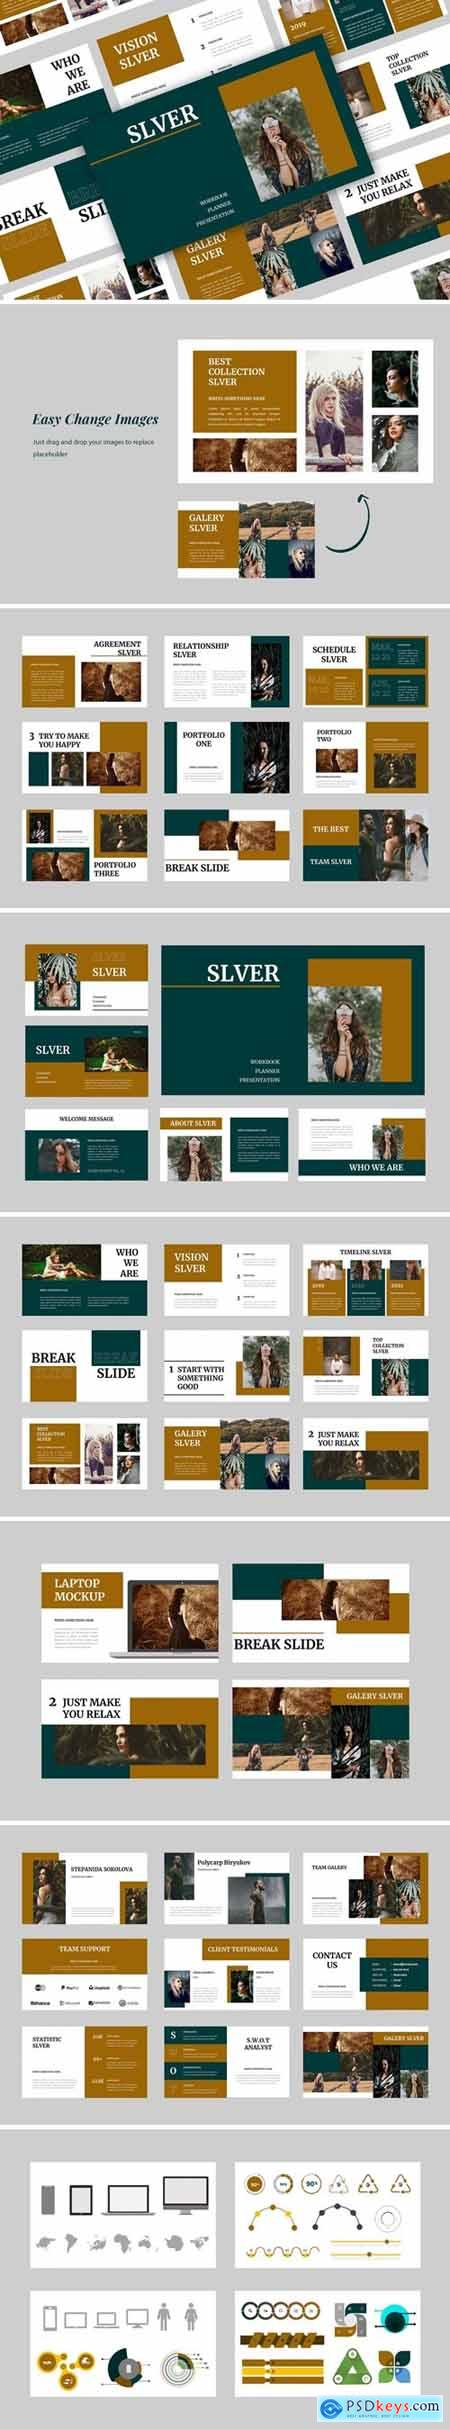 Slever Powerpoint, Keynote and Google Slides Templates